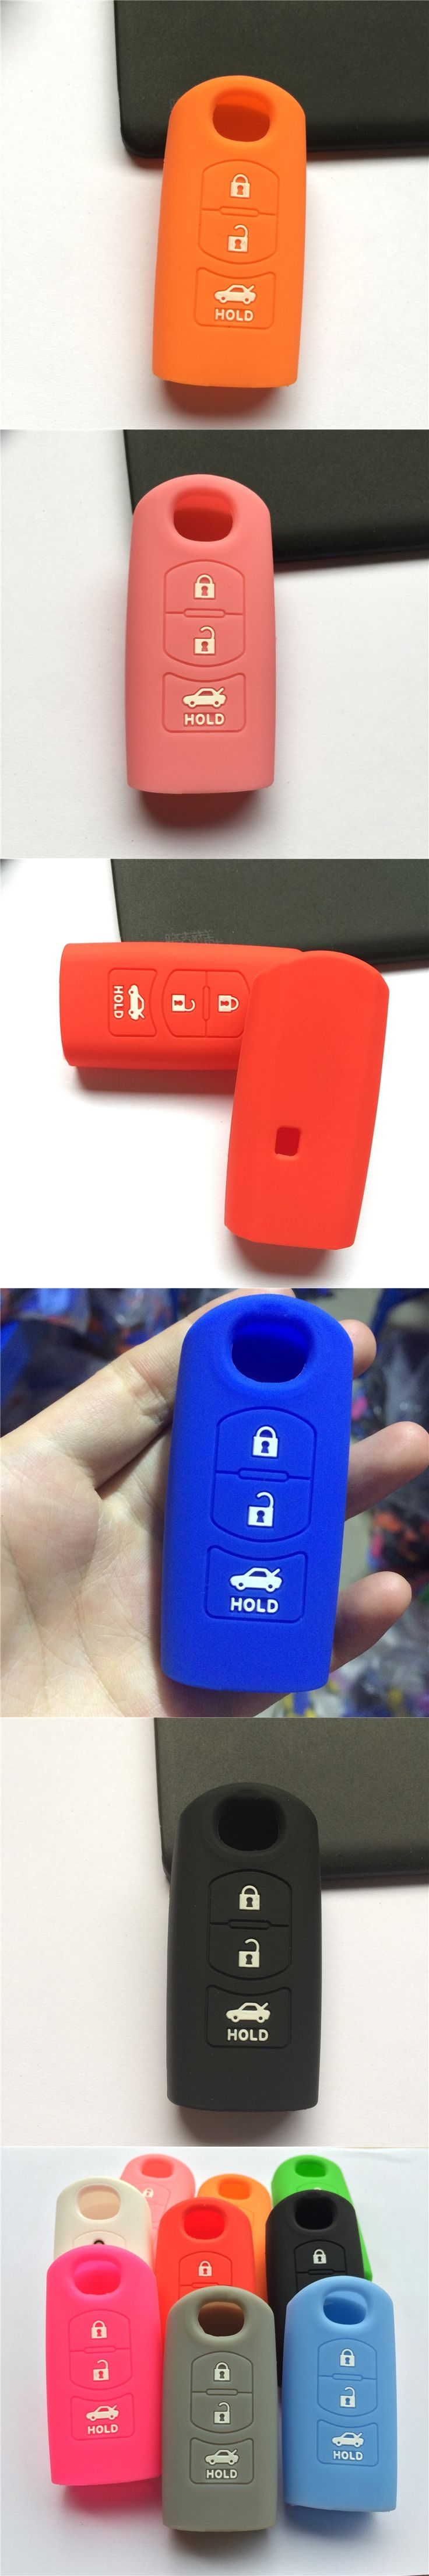 Silicone rubber car key Cover Holder set fit for MAZDA 3 5 6 Axela CX5 CX7 Atenza Core-wing Smart Remote Key Case 3 Buttons